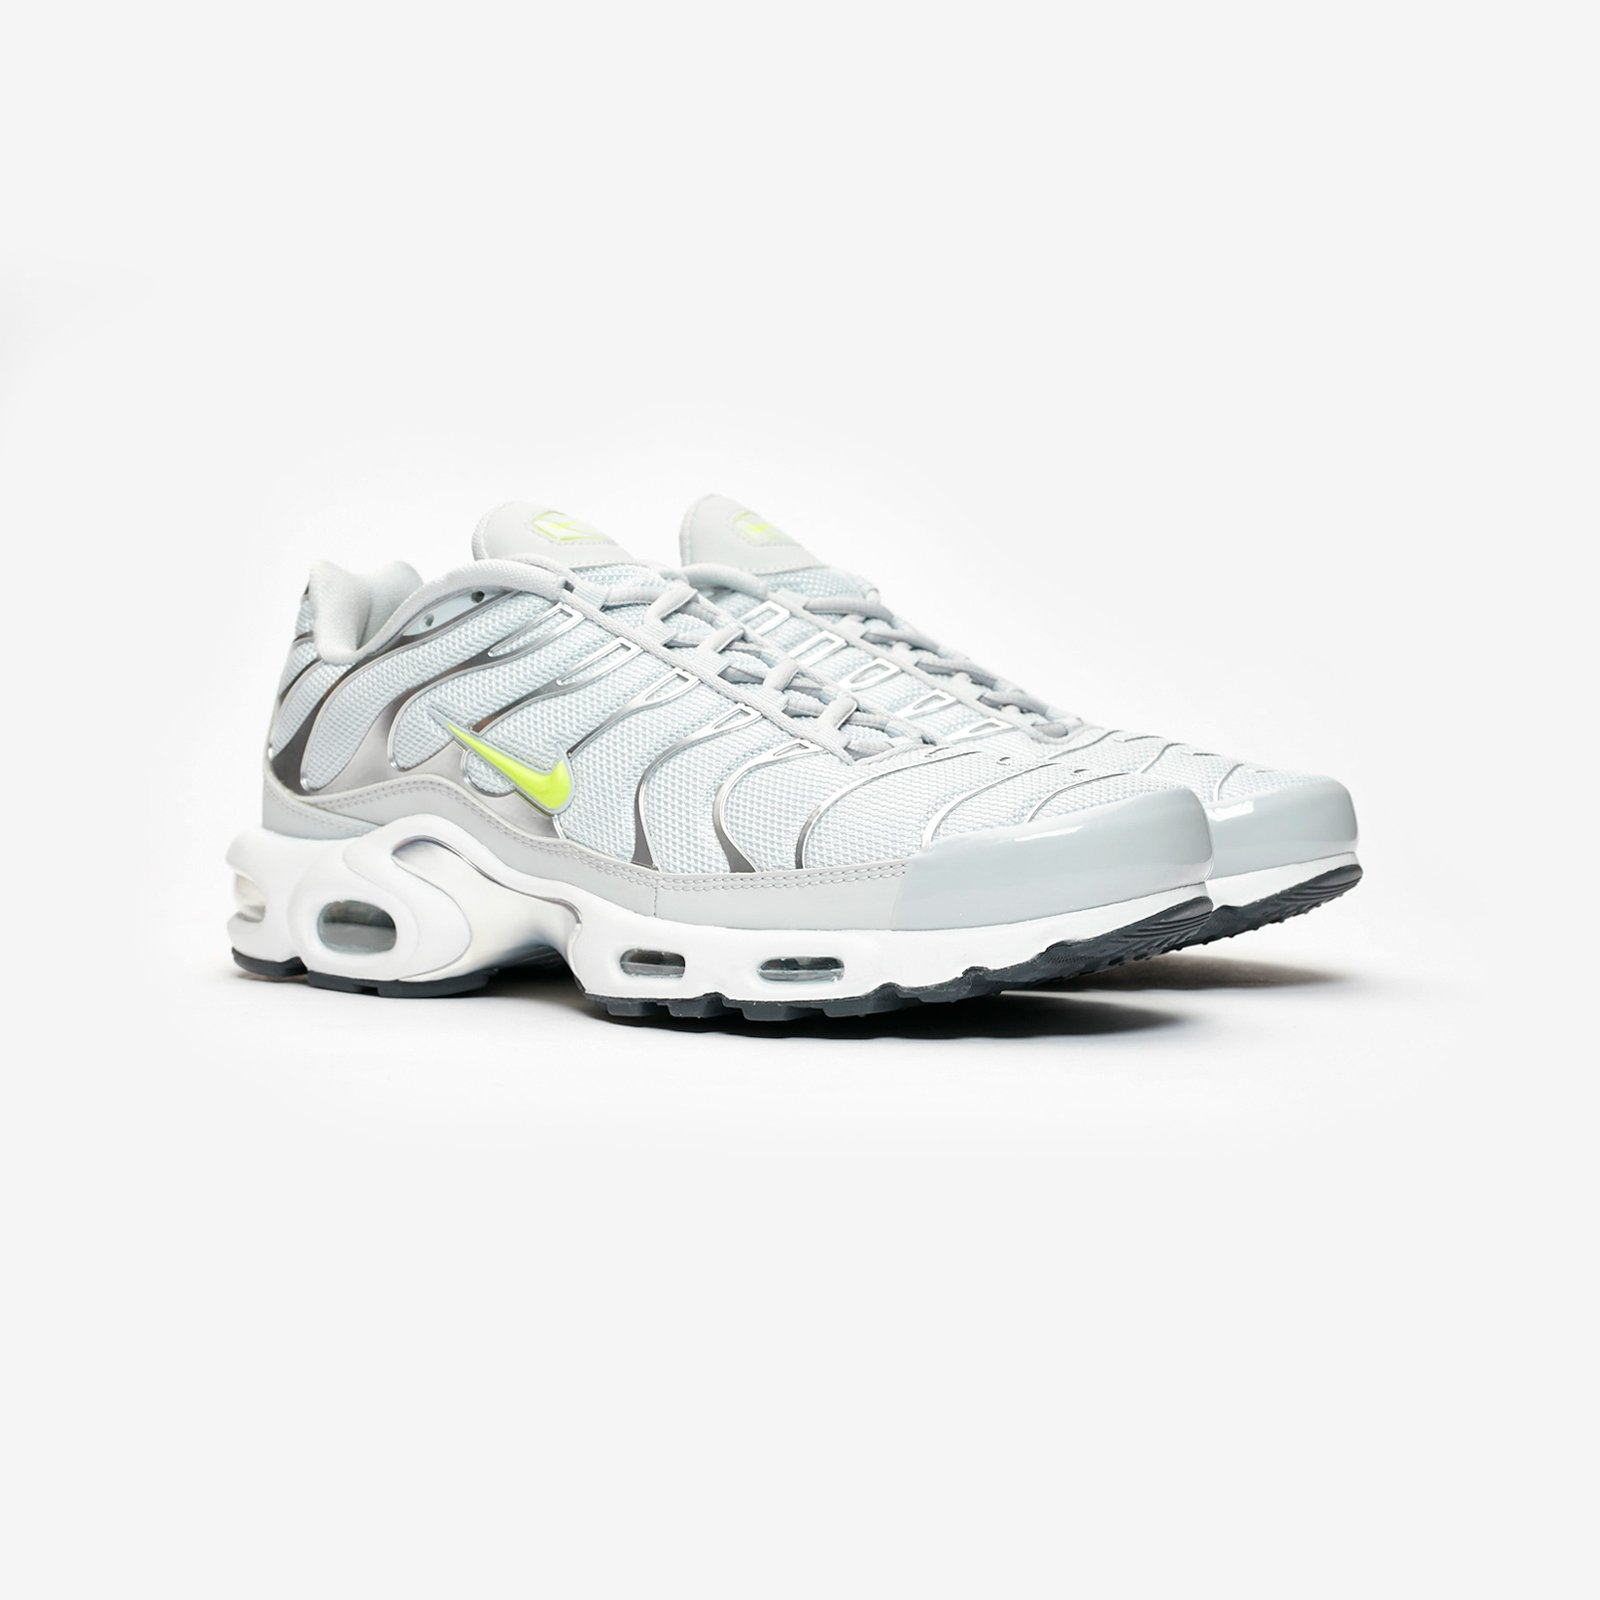 uk availability 3eb71 abfb4 Nike Sportswear Air Max Plus TN SE